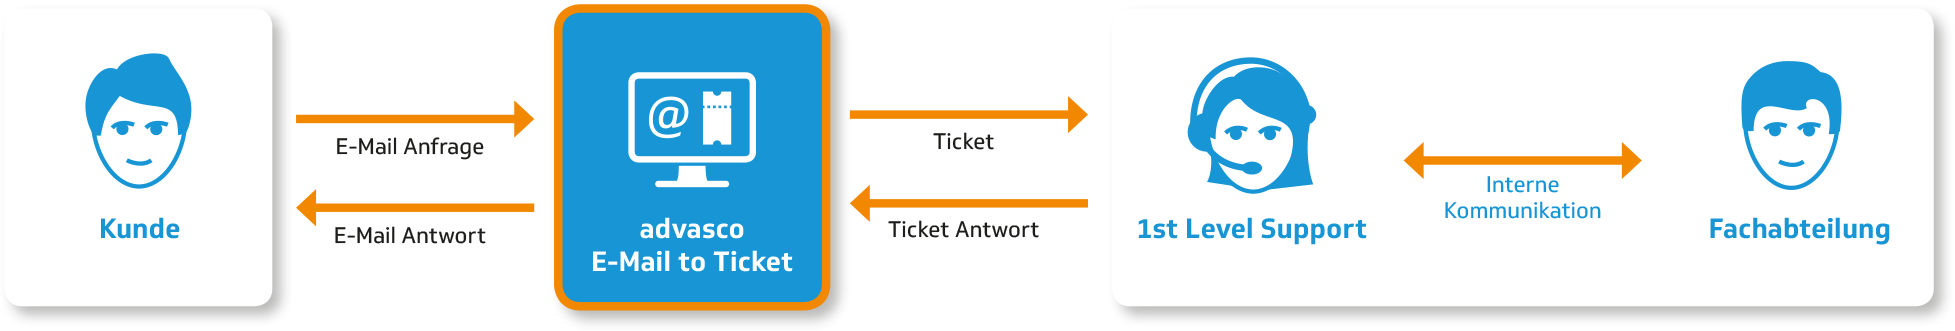 E-Mail to Ticket | advasco IT-Lösung